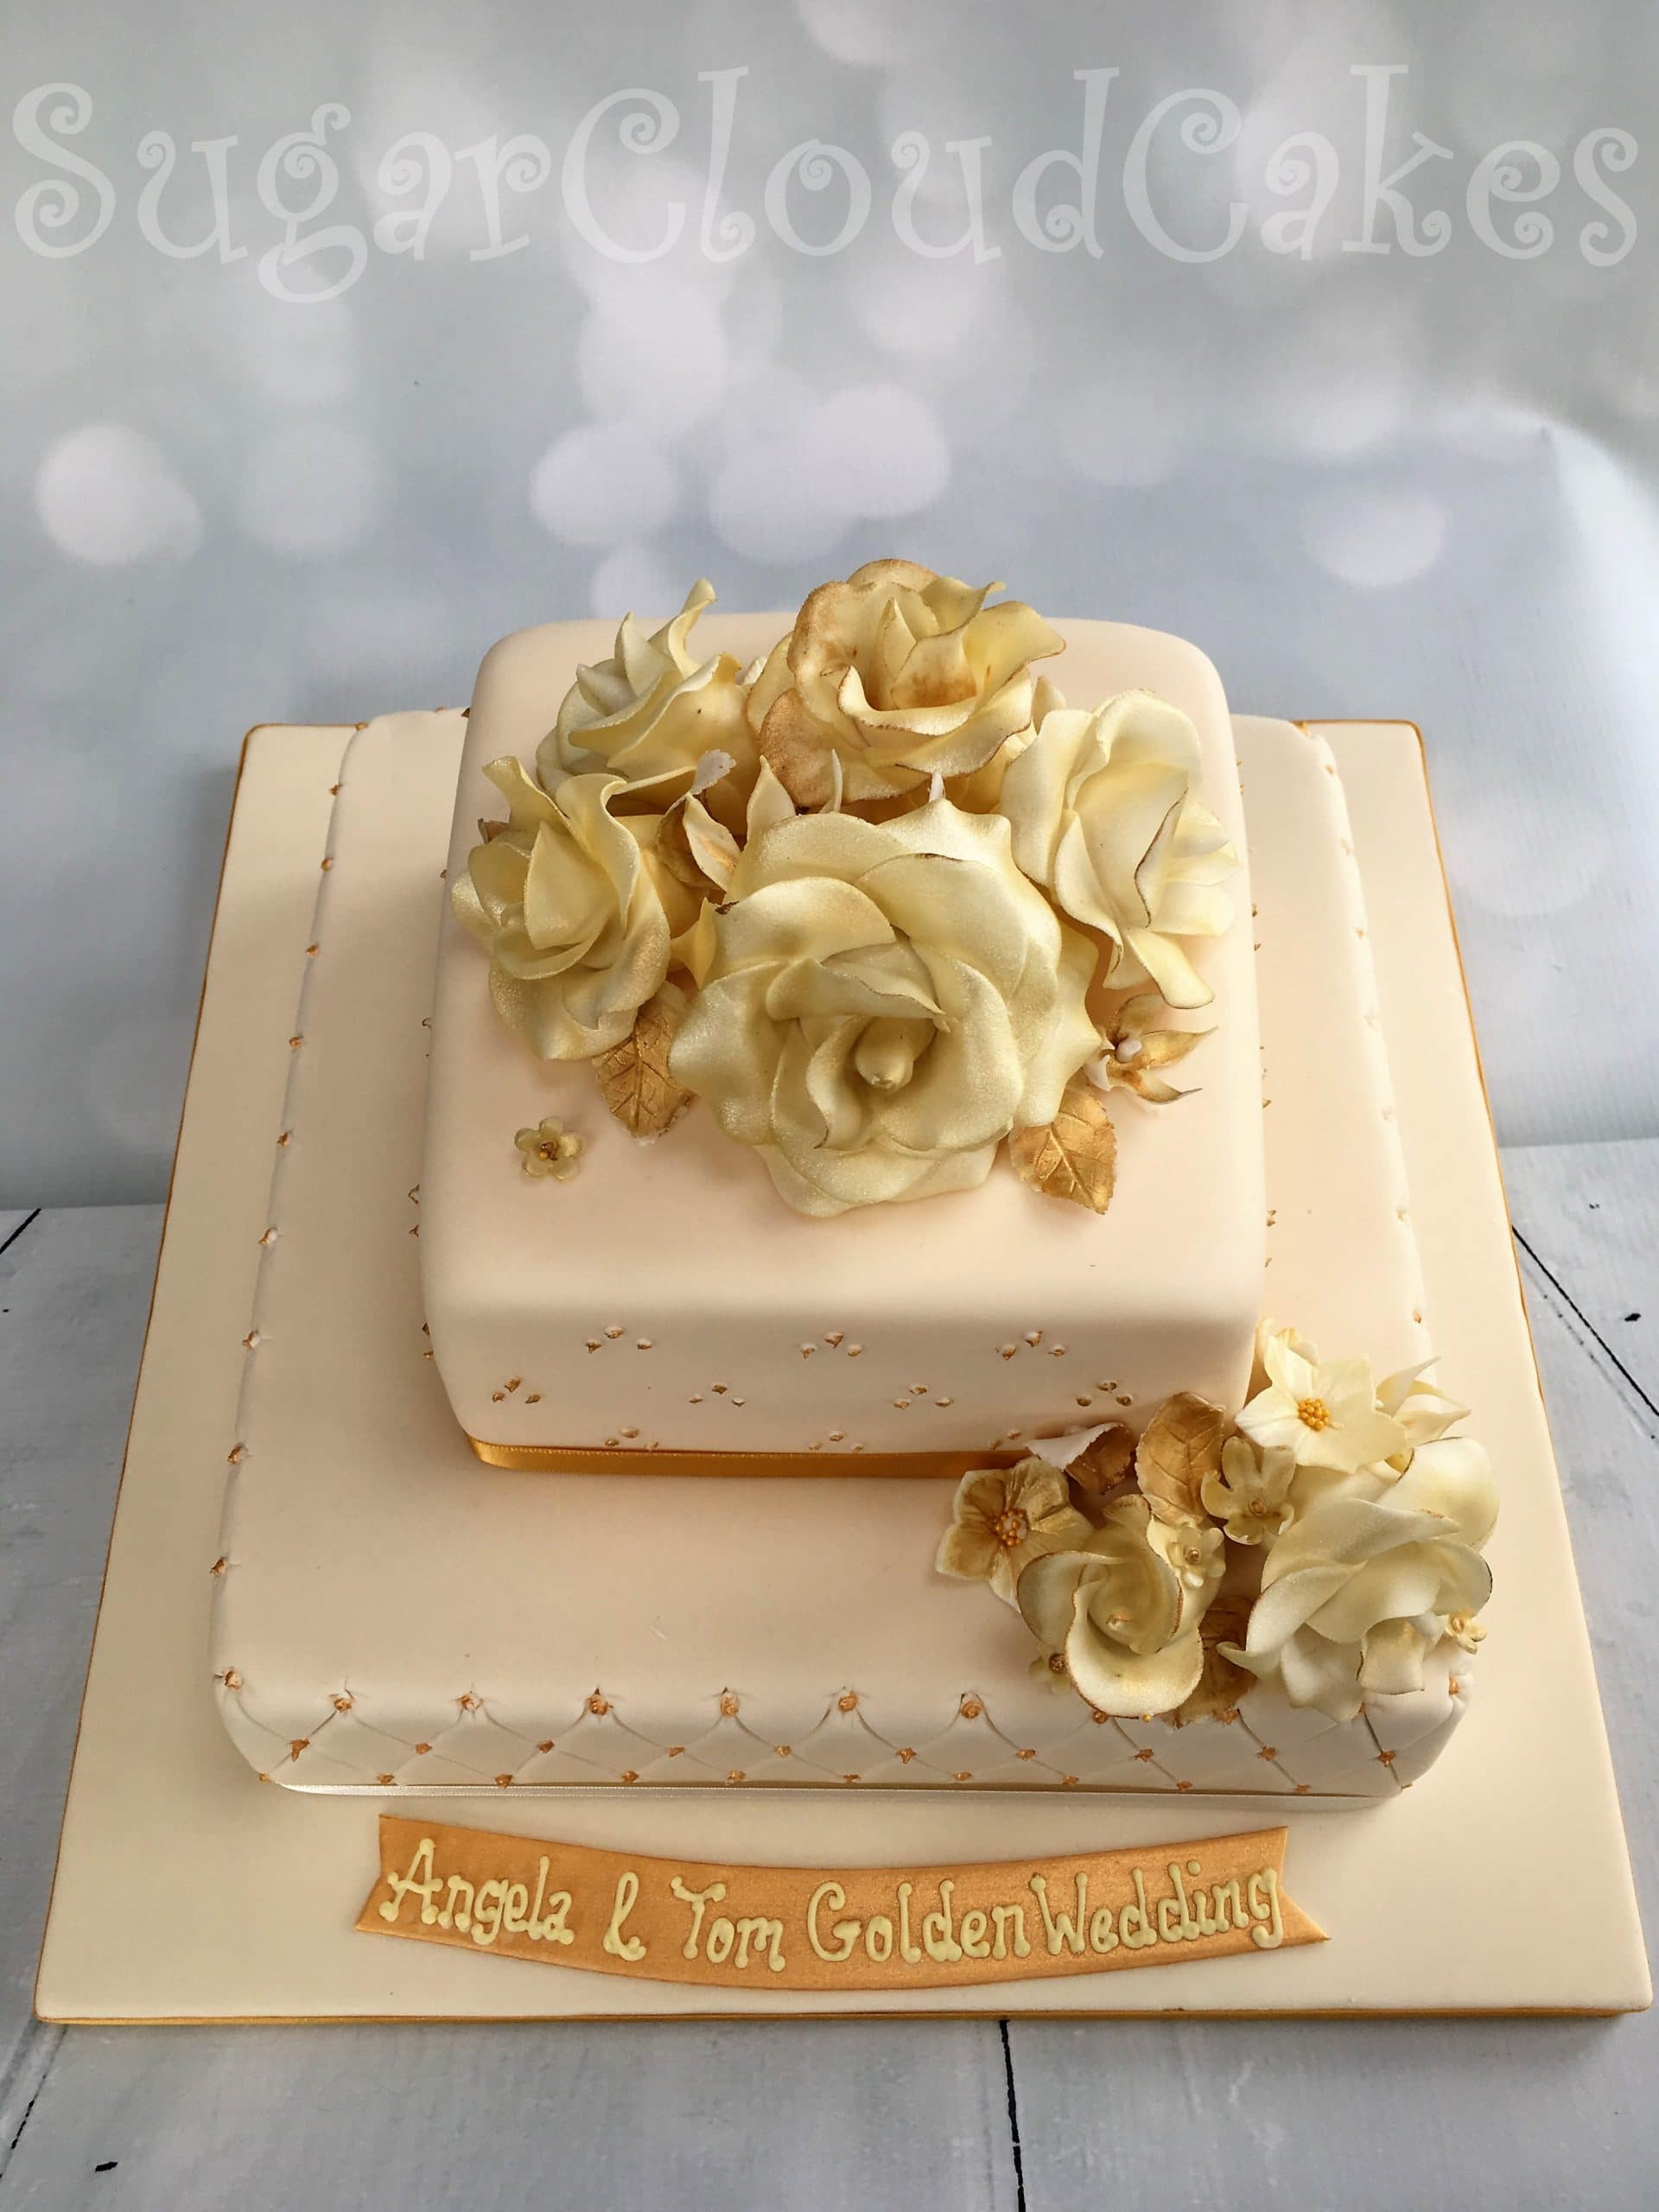 Golden wedding roses dairy and gluten free cake